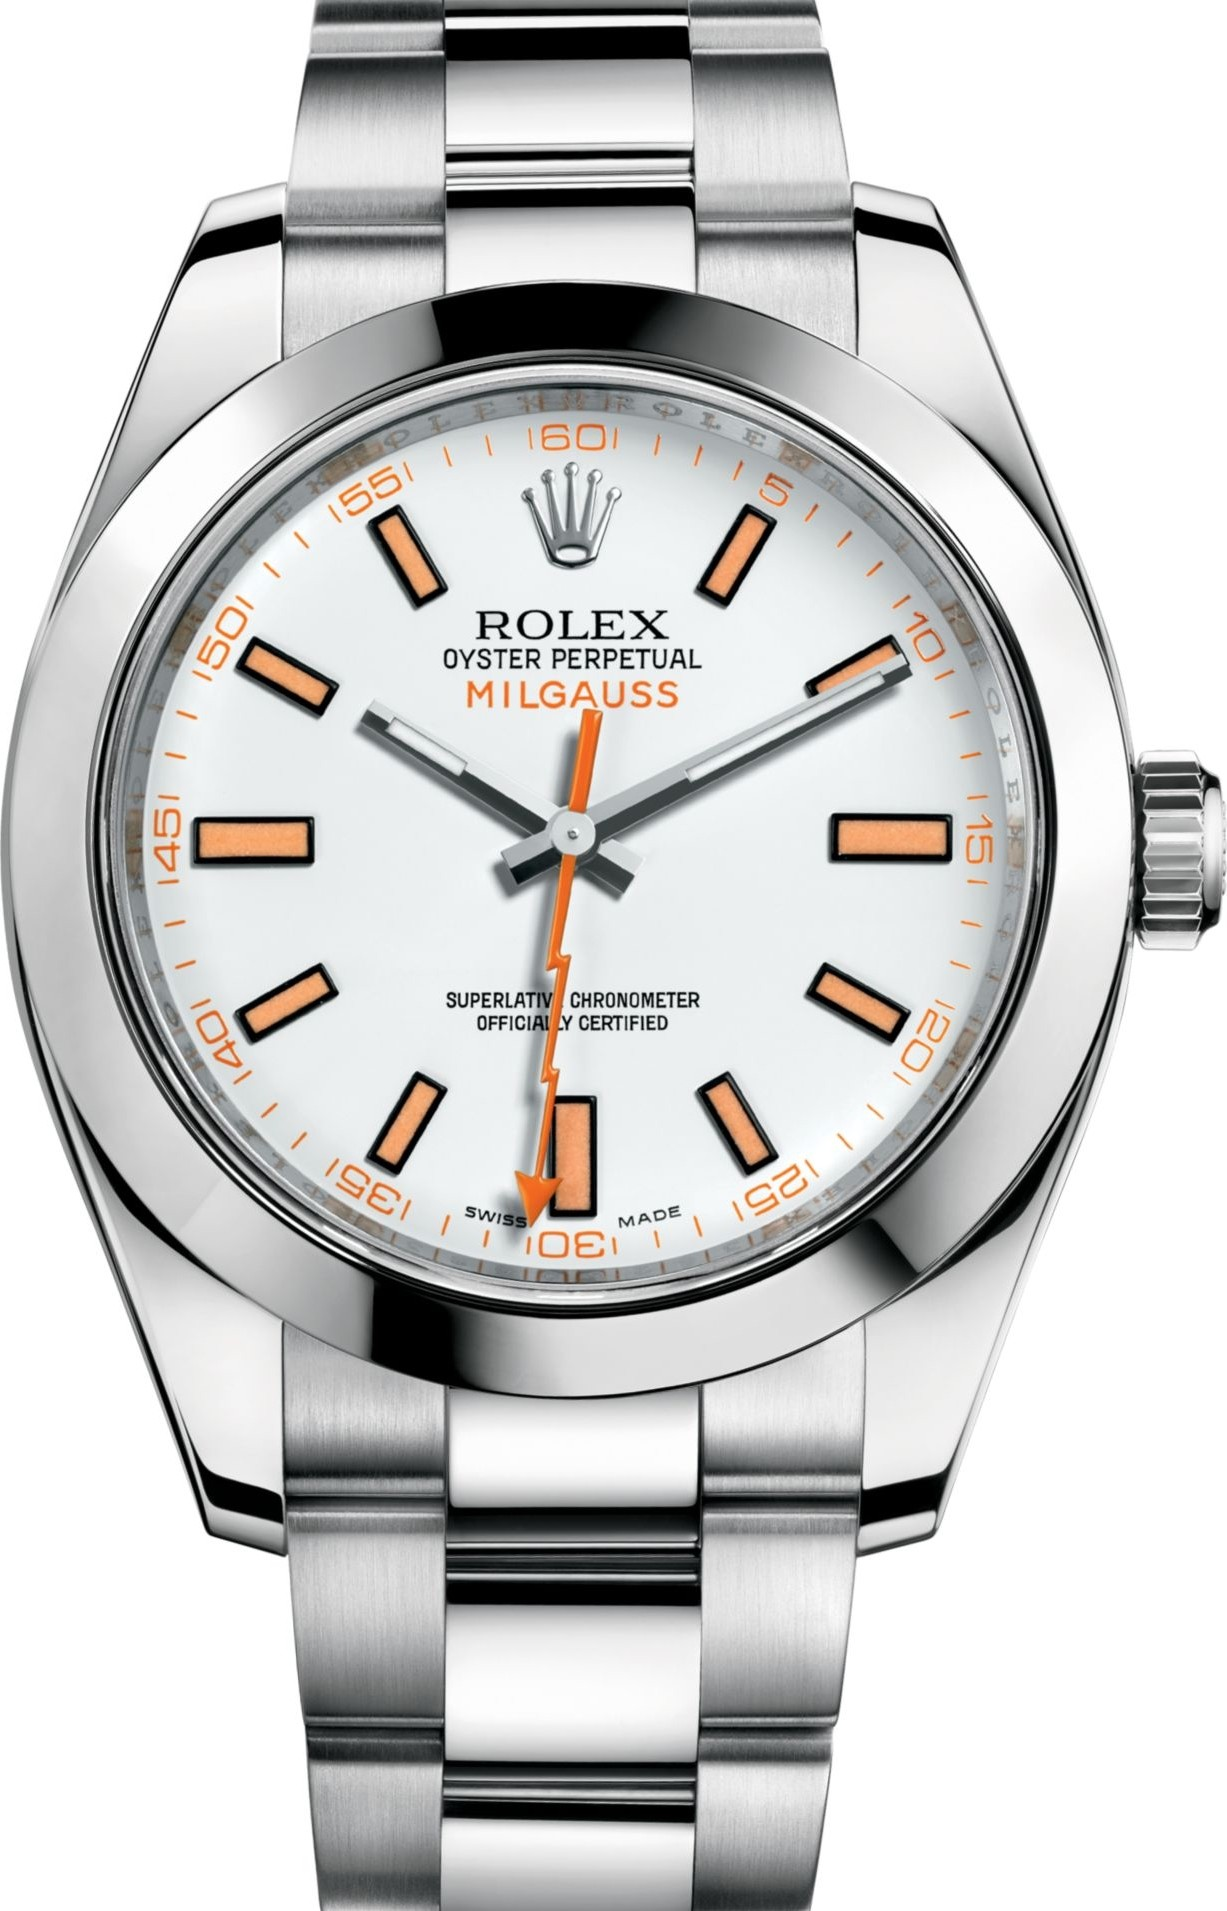 Rolex Milgauss 116400 Oyster Perpetual Watch 40mm